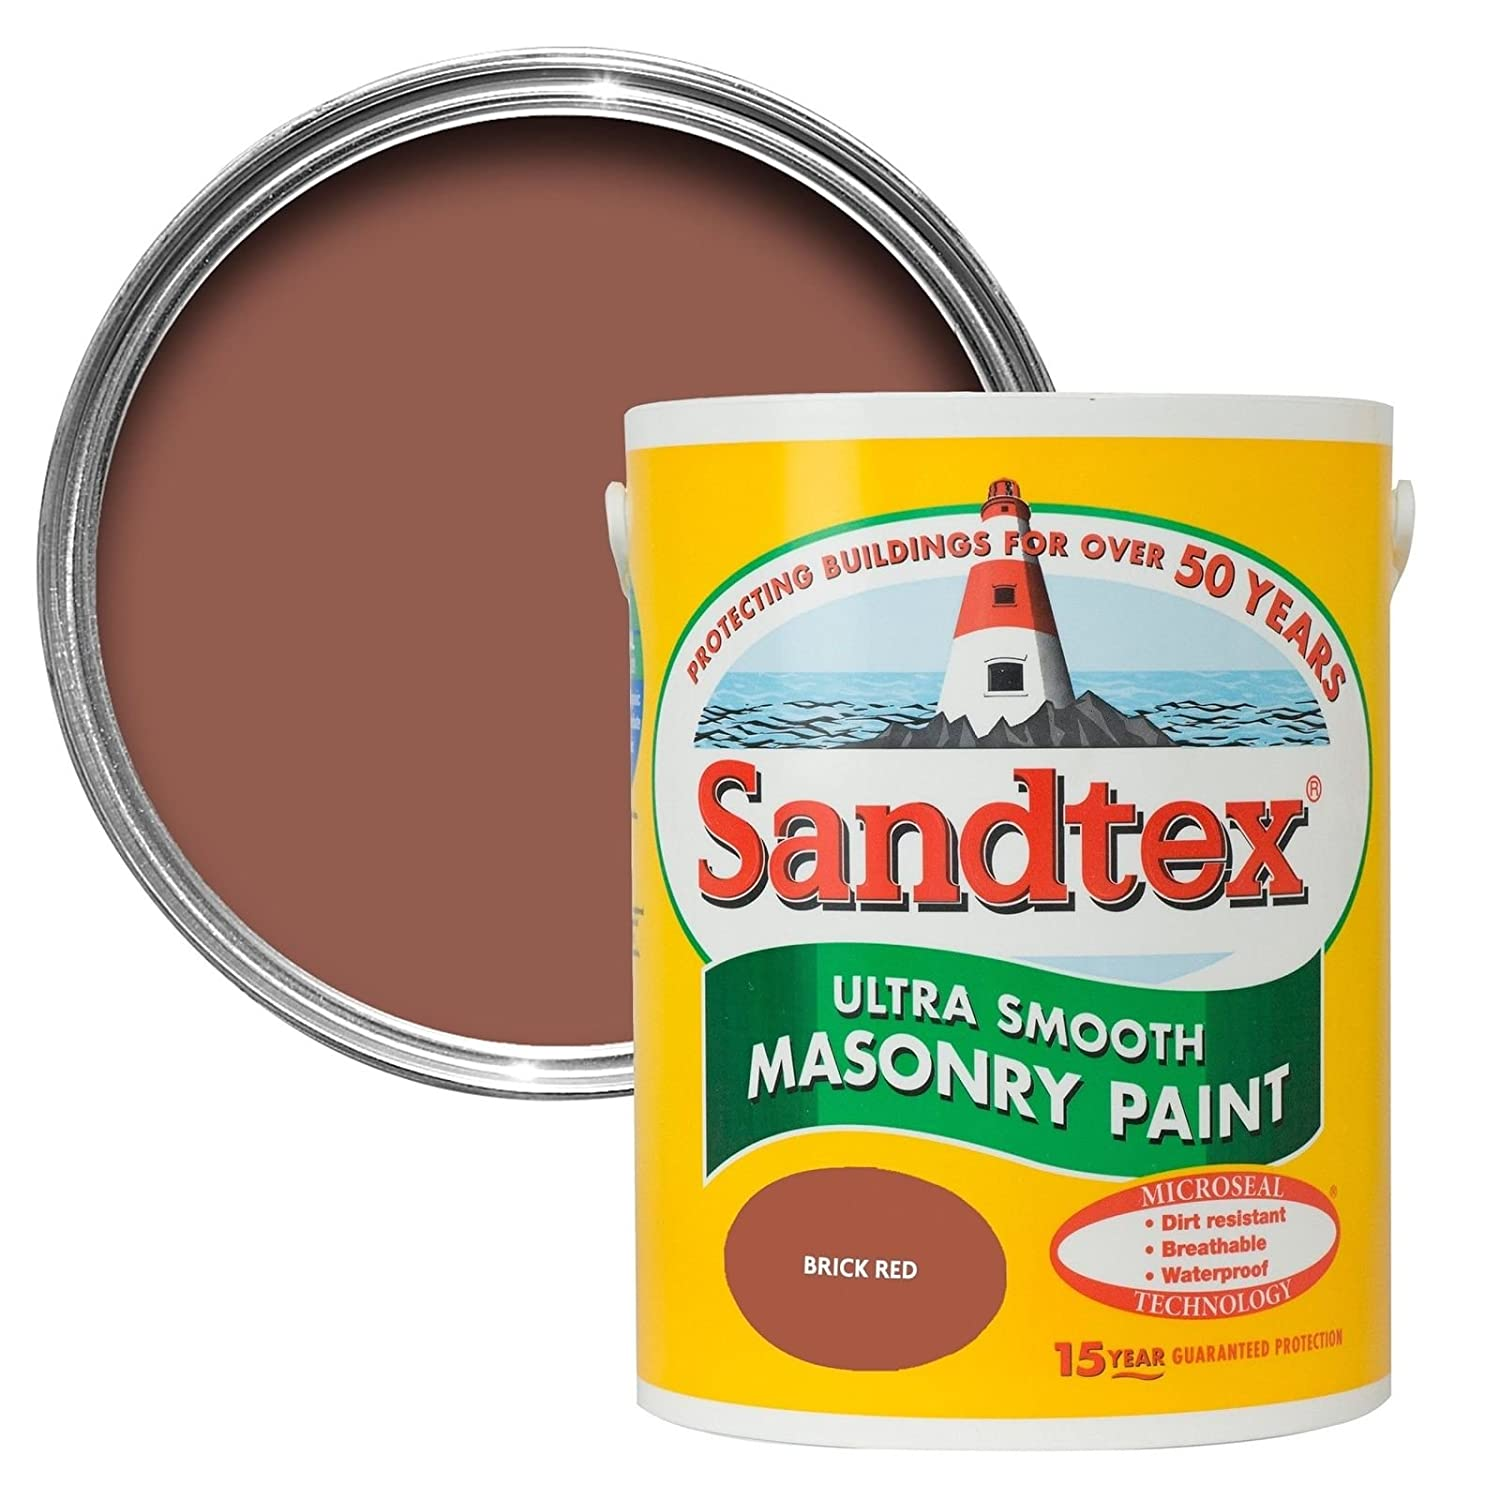 Sandtex 5090071  Peinture exté rieure, Brique rouge Crown Paints